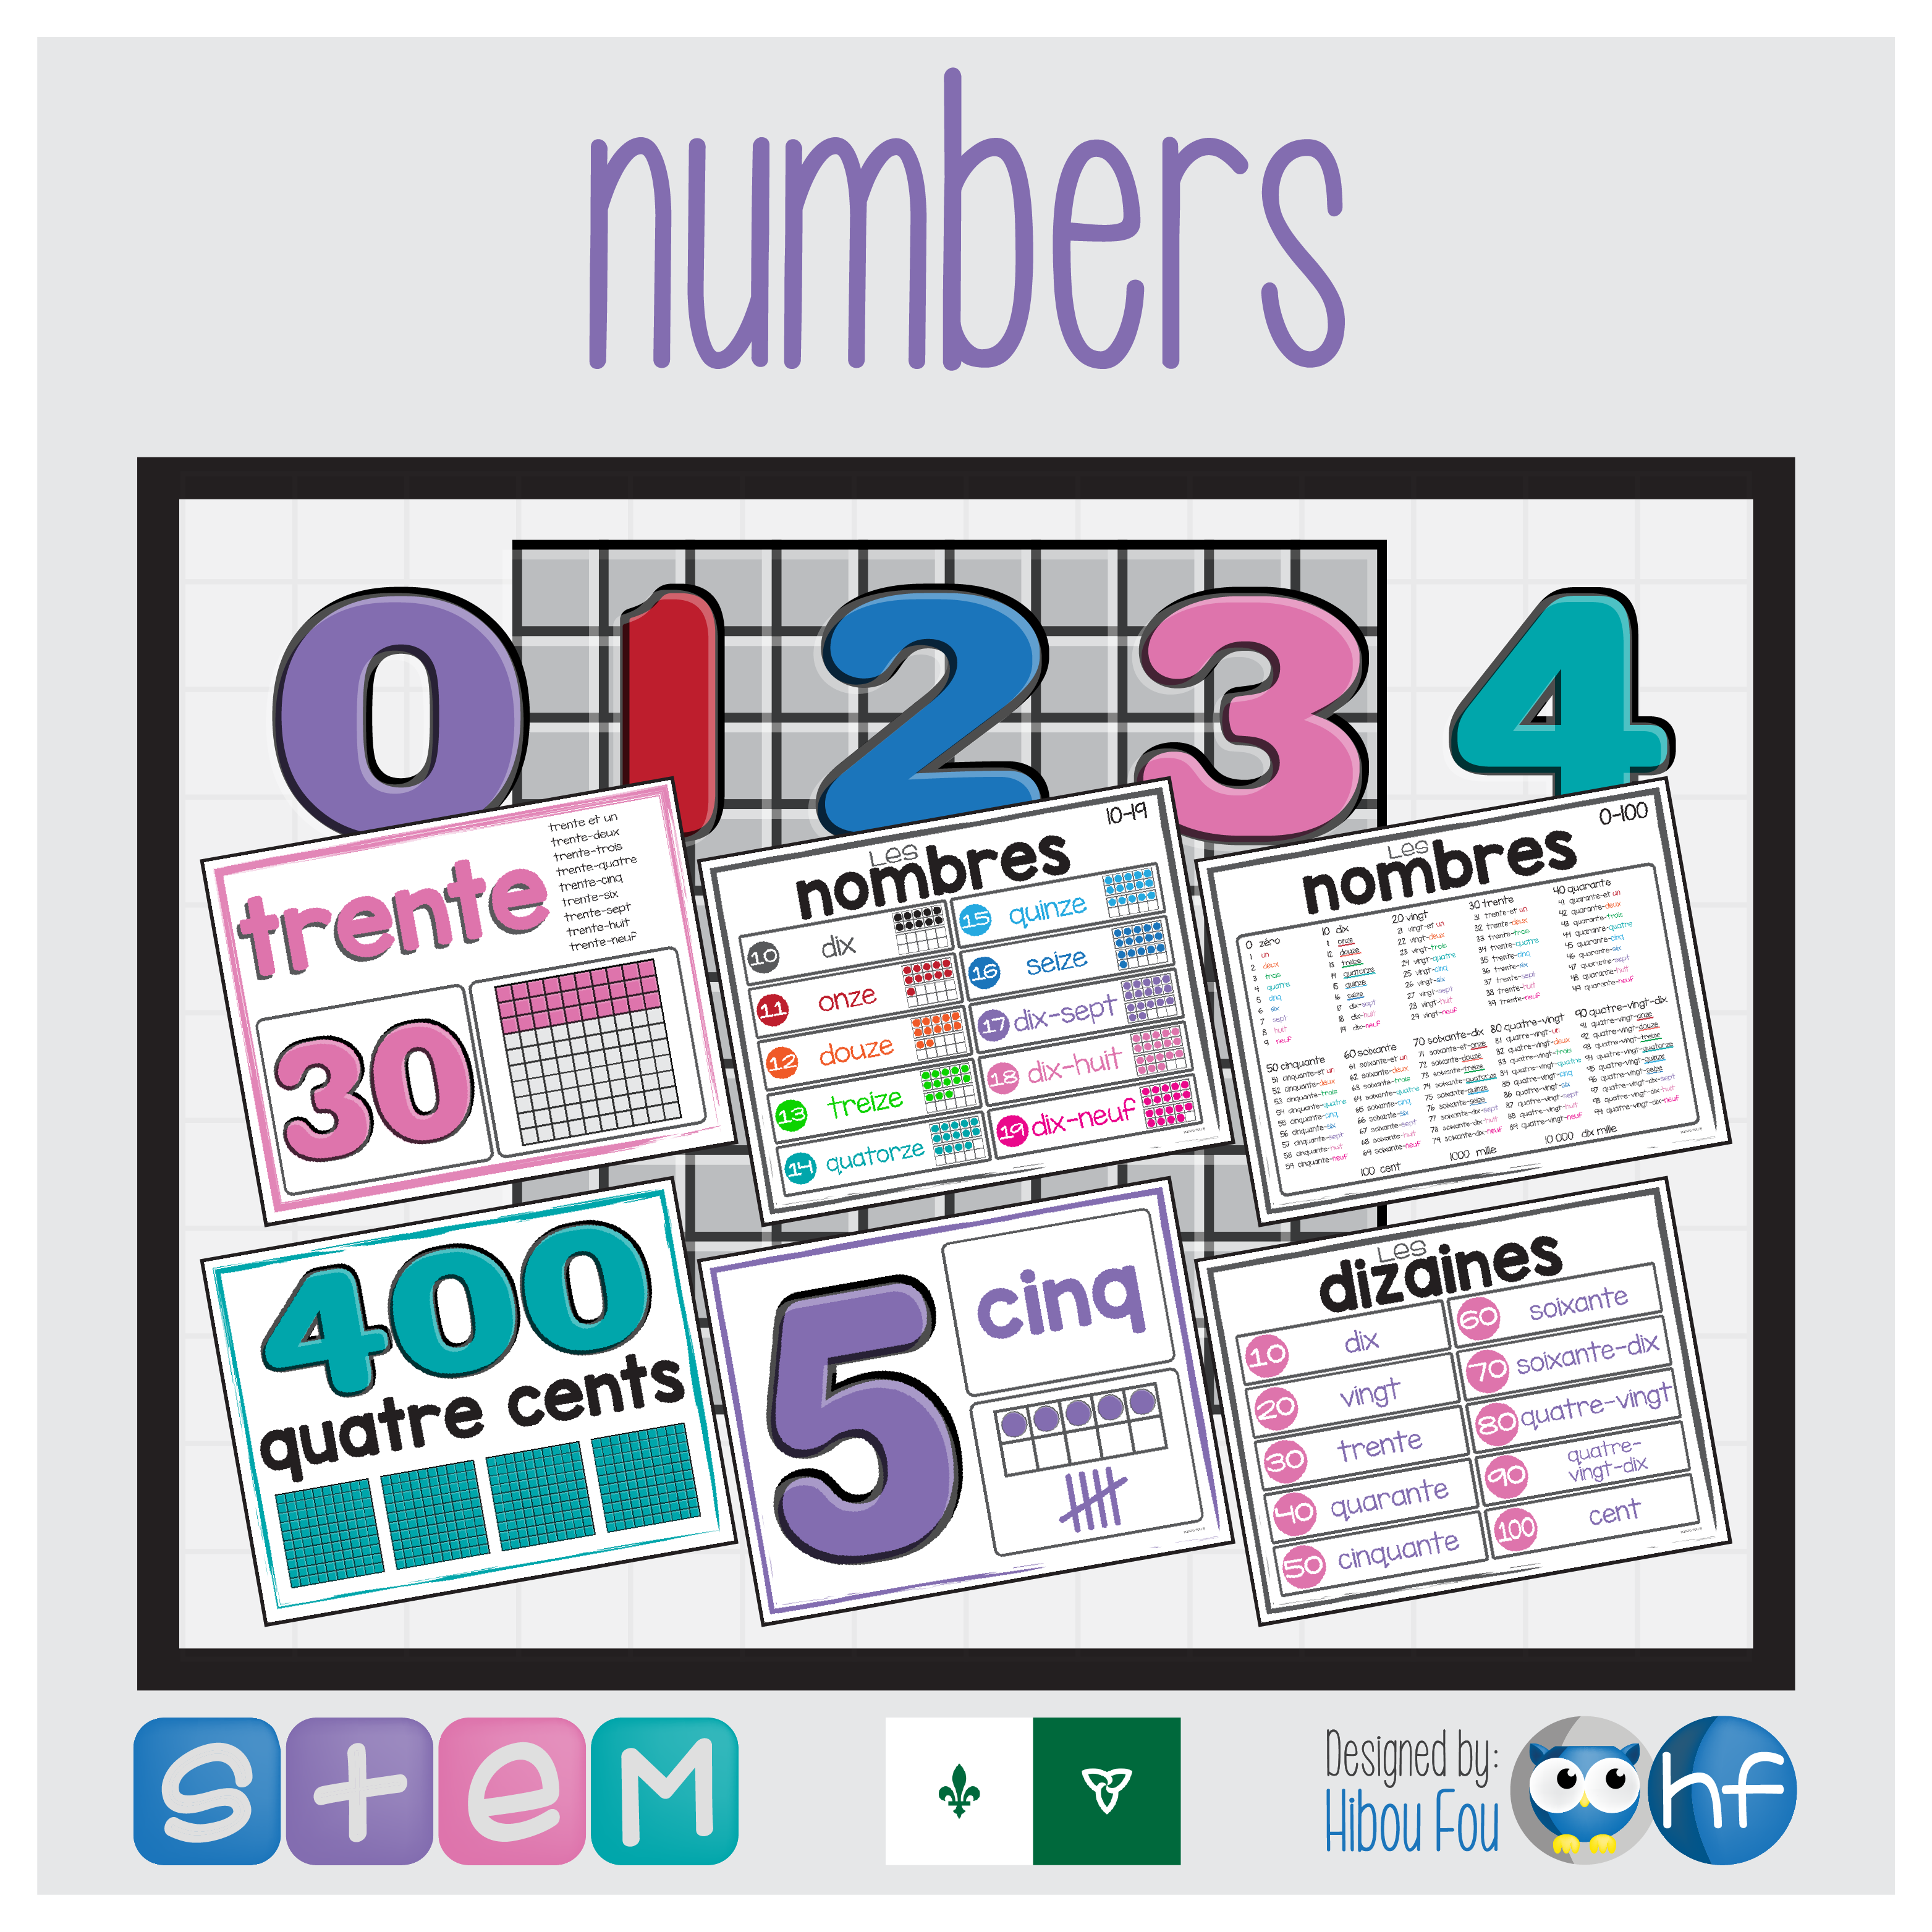 Numbers Primary French Immersion Anchor Charts Digital Learning French Immersion